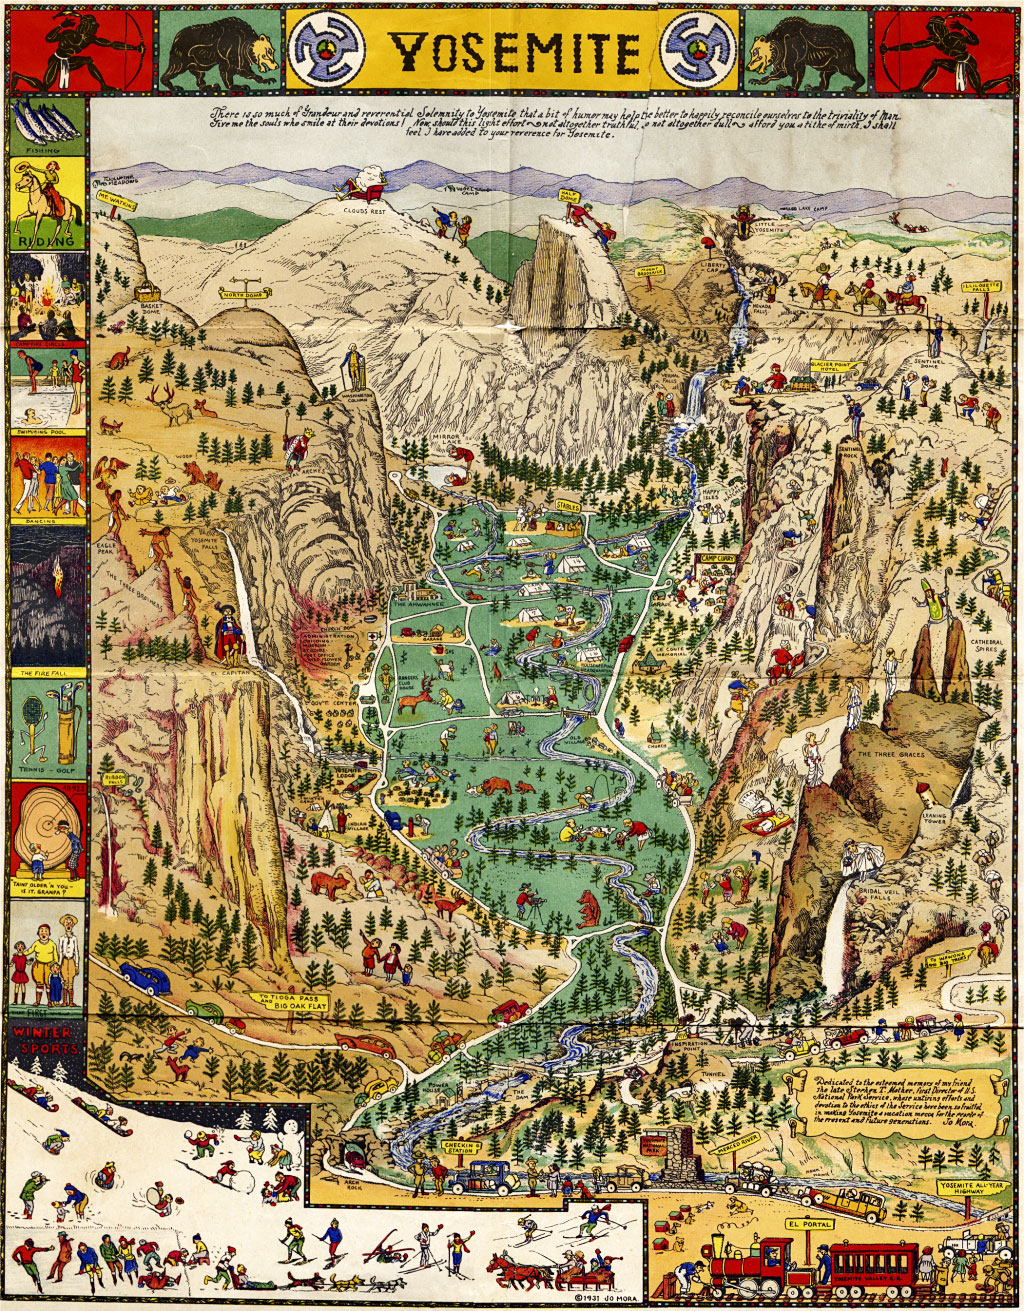 This map of the Yosemite Valley illustrated by Jo Mora, circa 1940s, shows how indigenous symbols were used to advertise the park even as Native American residents were being forced out. (Click to enlarge.)